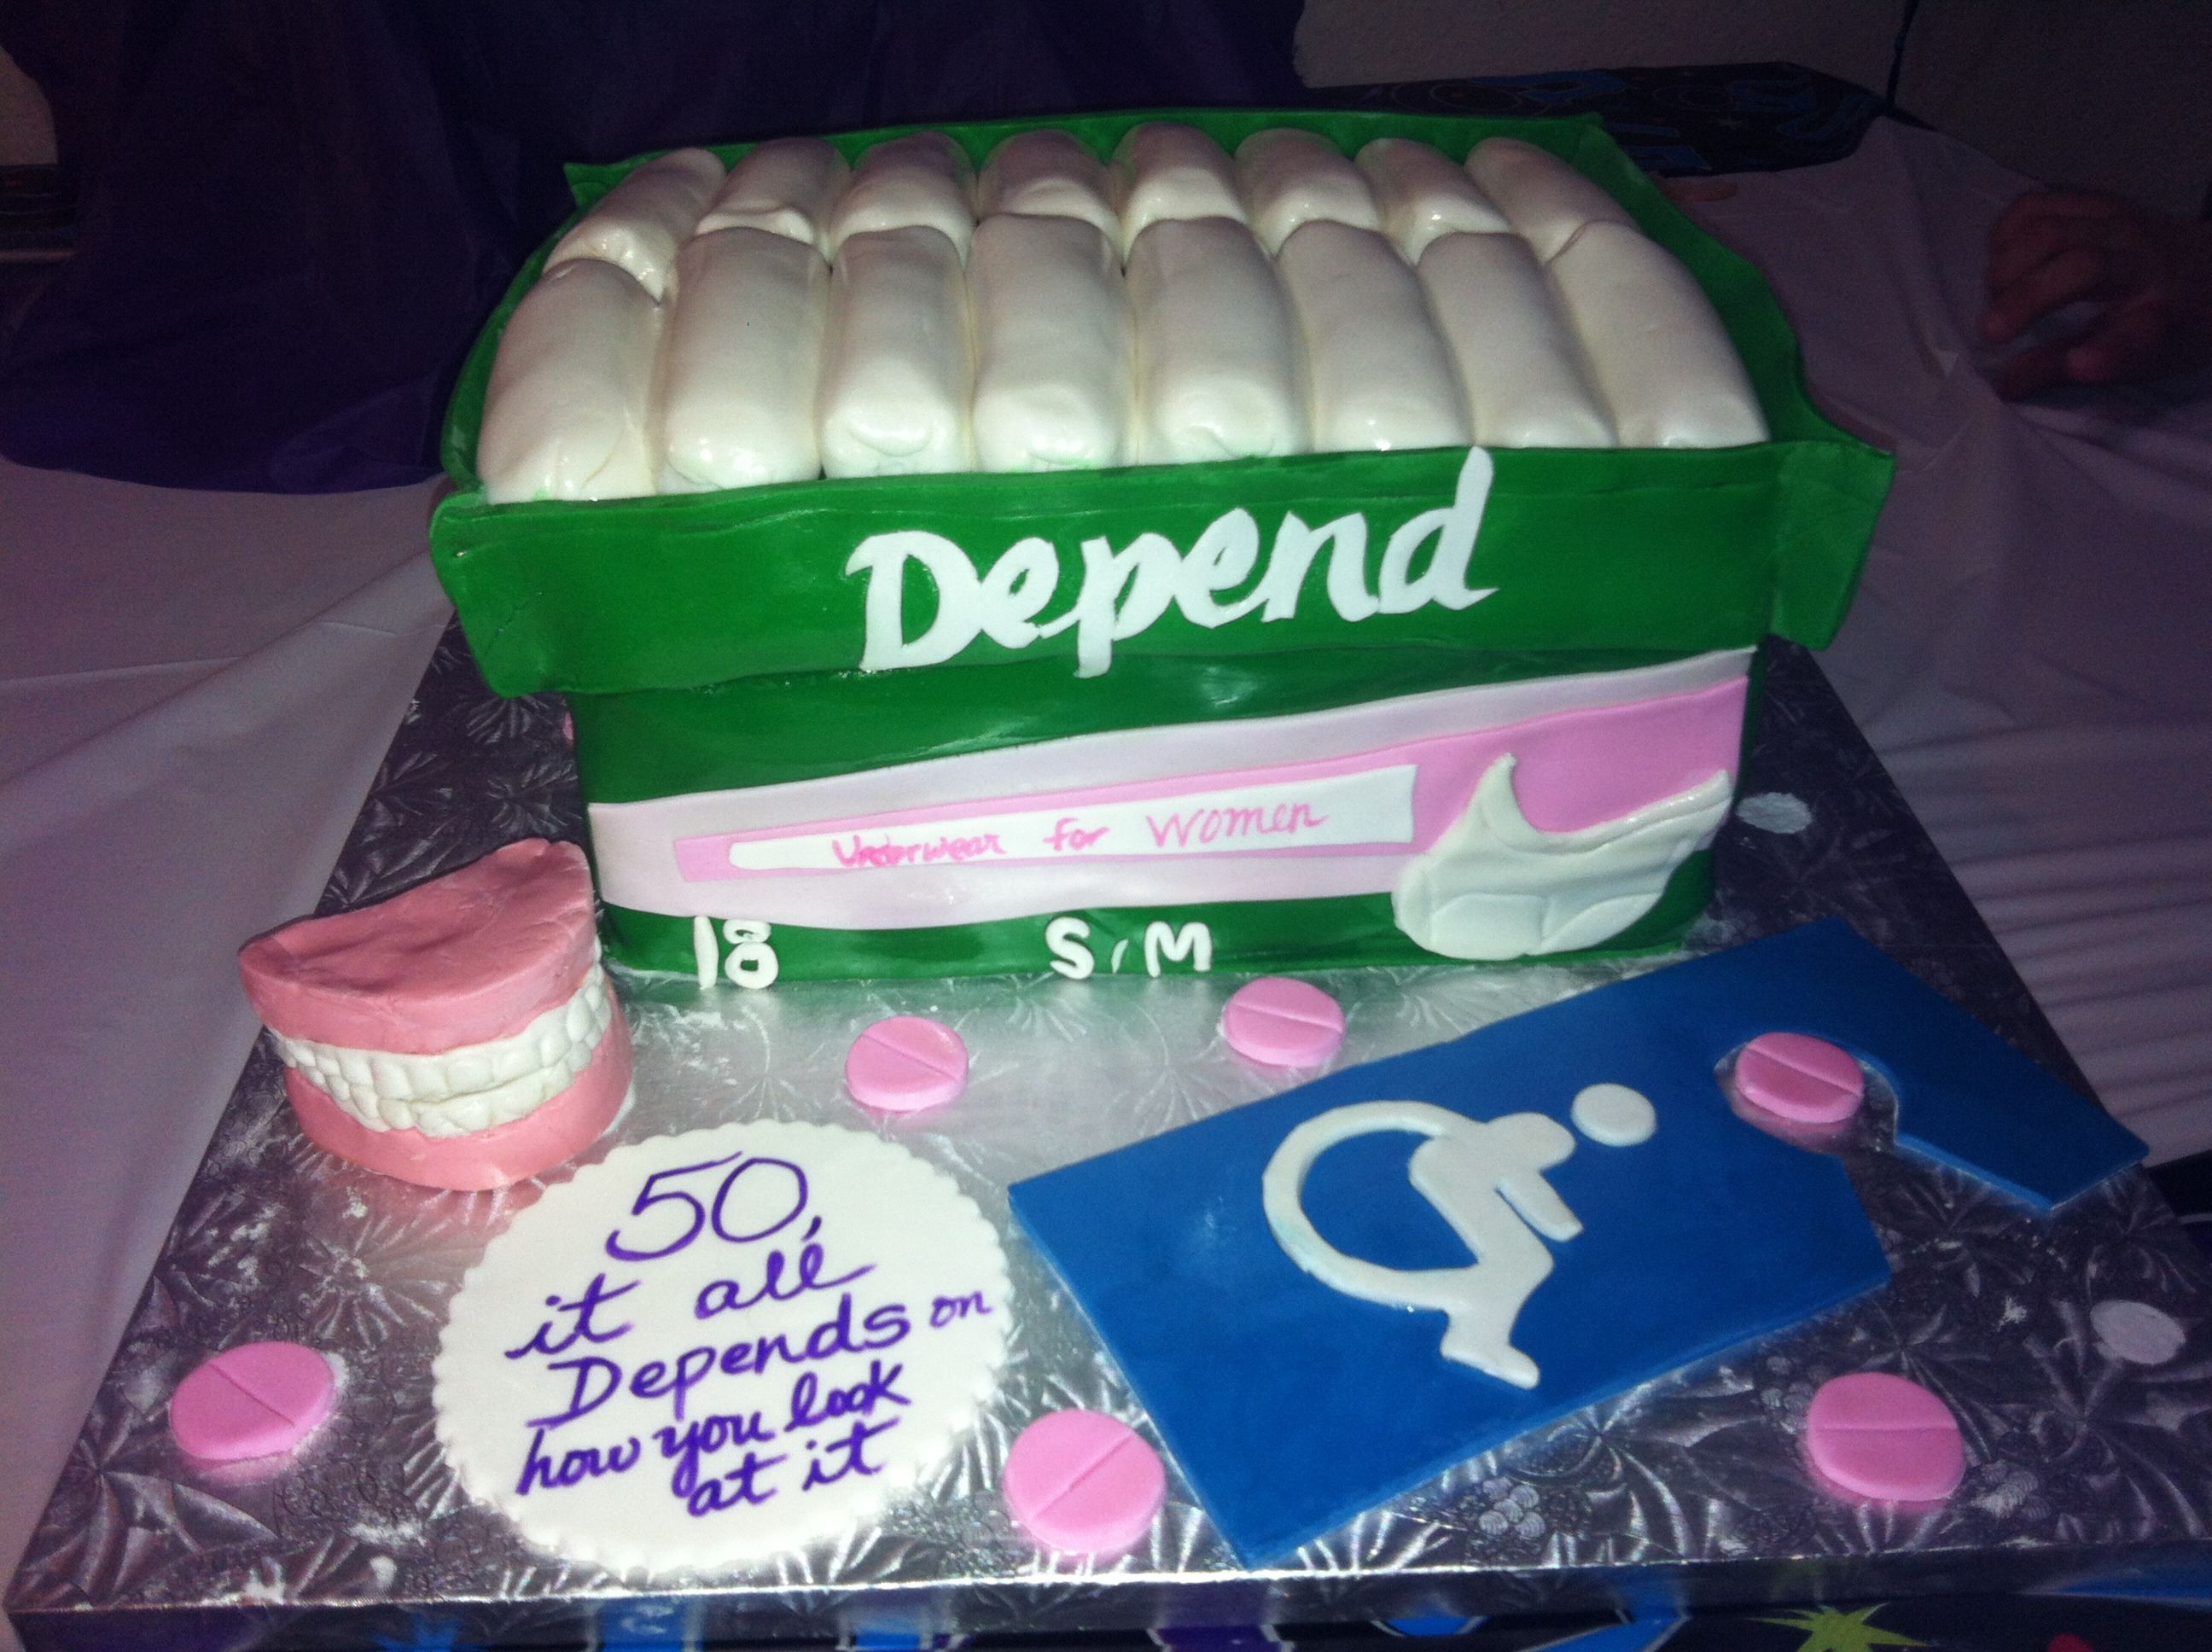 Funny Birthday Cake Ideas For Adults Image Inspiration of Cake